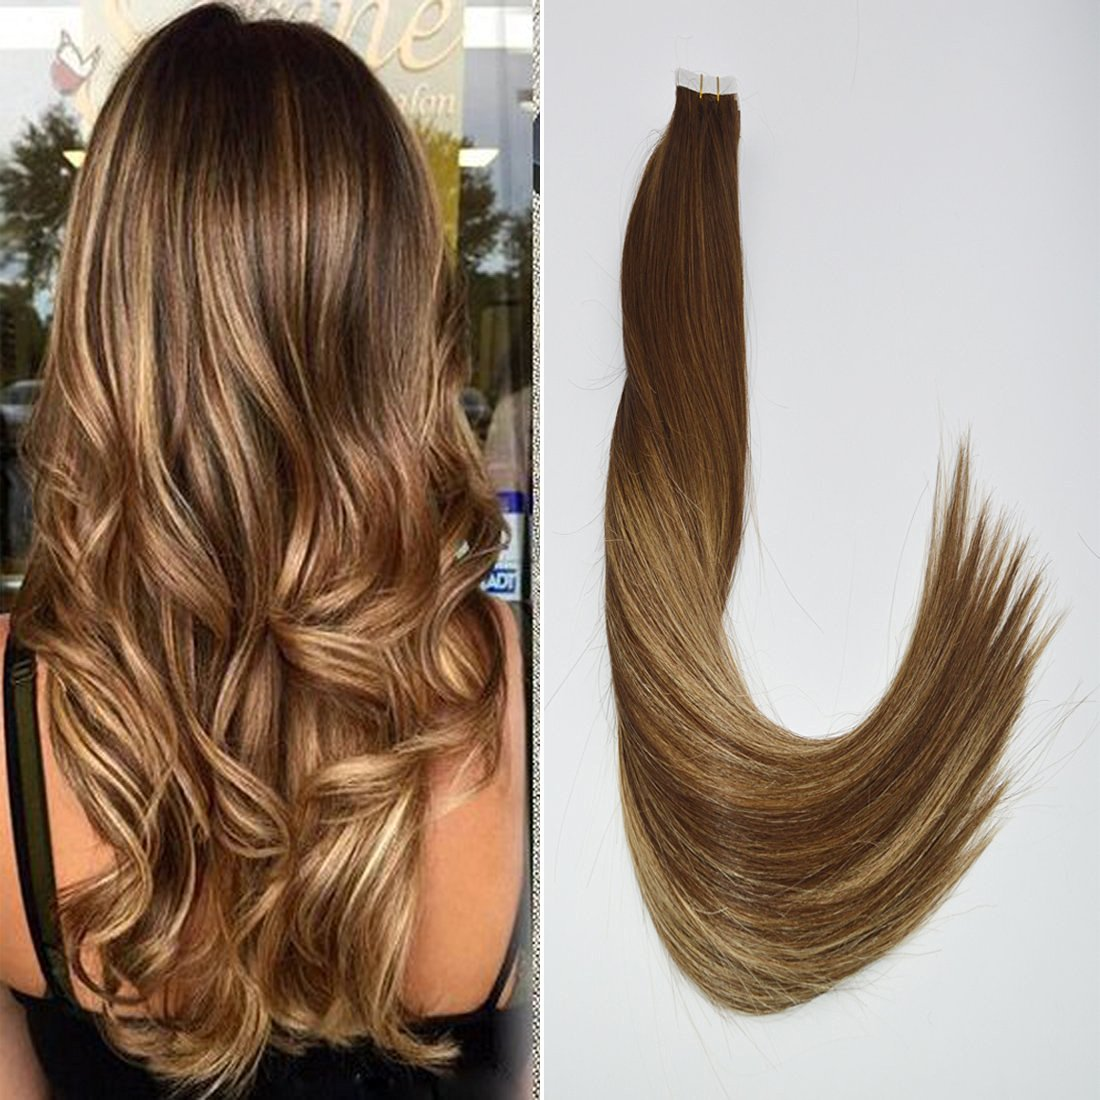 "BeautyMiss 14"" 20Pcs/50g BeautyMiss 14""-24"" 20Pcs/50g 100% Brazilian Remy Hair Ombre 4# Chocolate Brown Fading to #27 Honey Blonde Mixed #4 Balayage Tape in Human Hair Extensions Salon Hair"